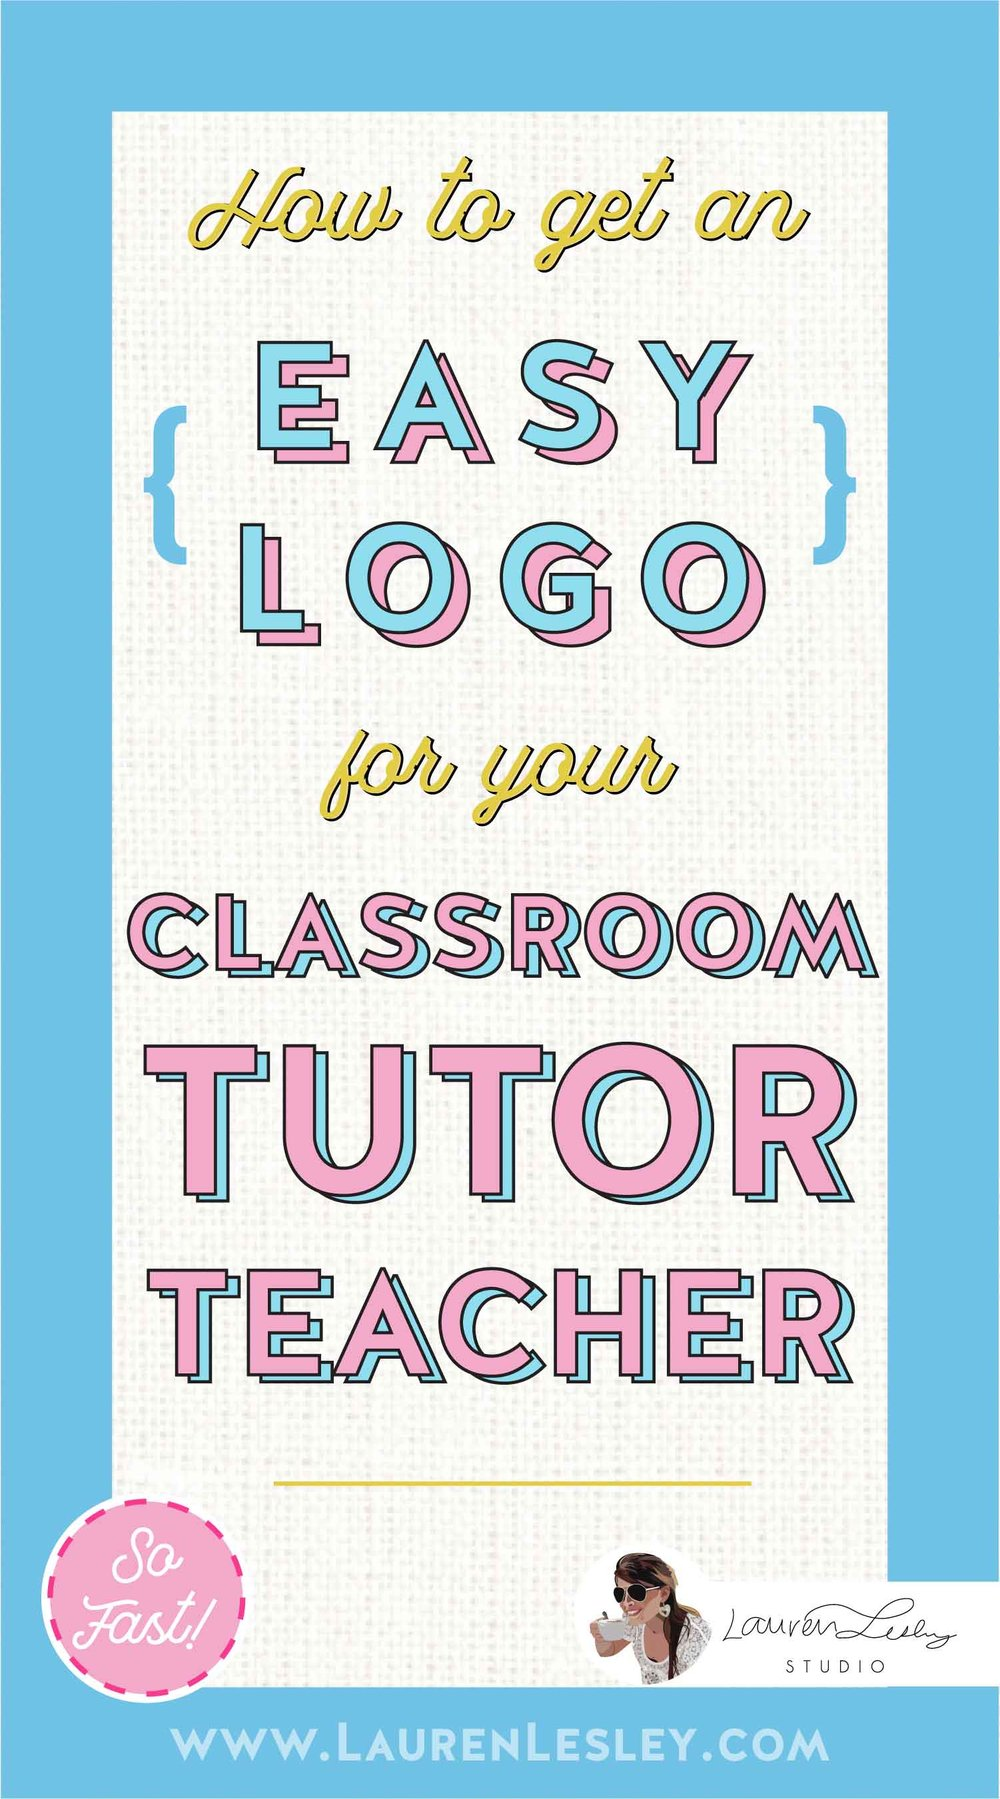 Get a Custom Classroom Tutor Teacher Logo